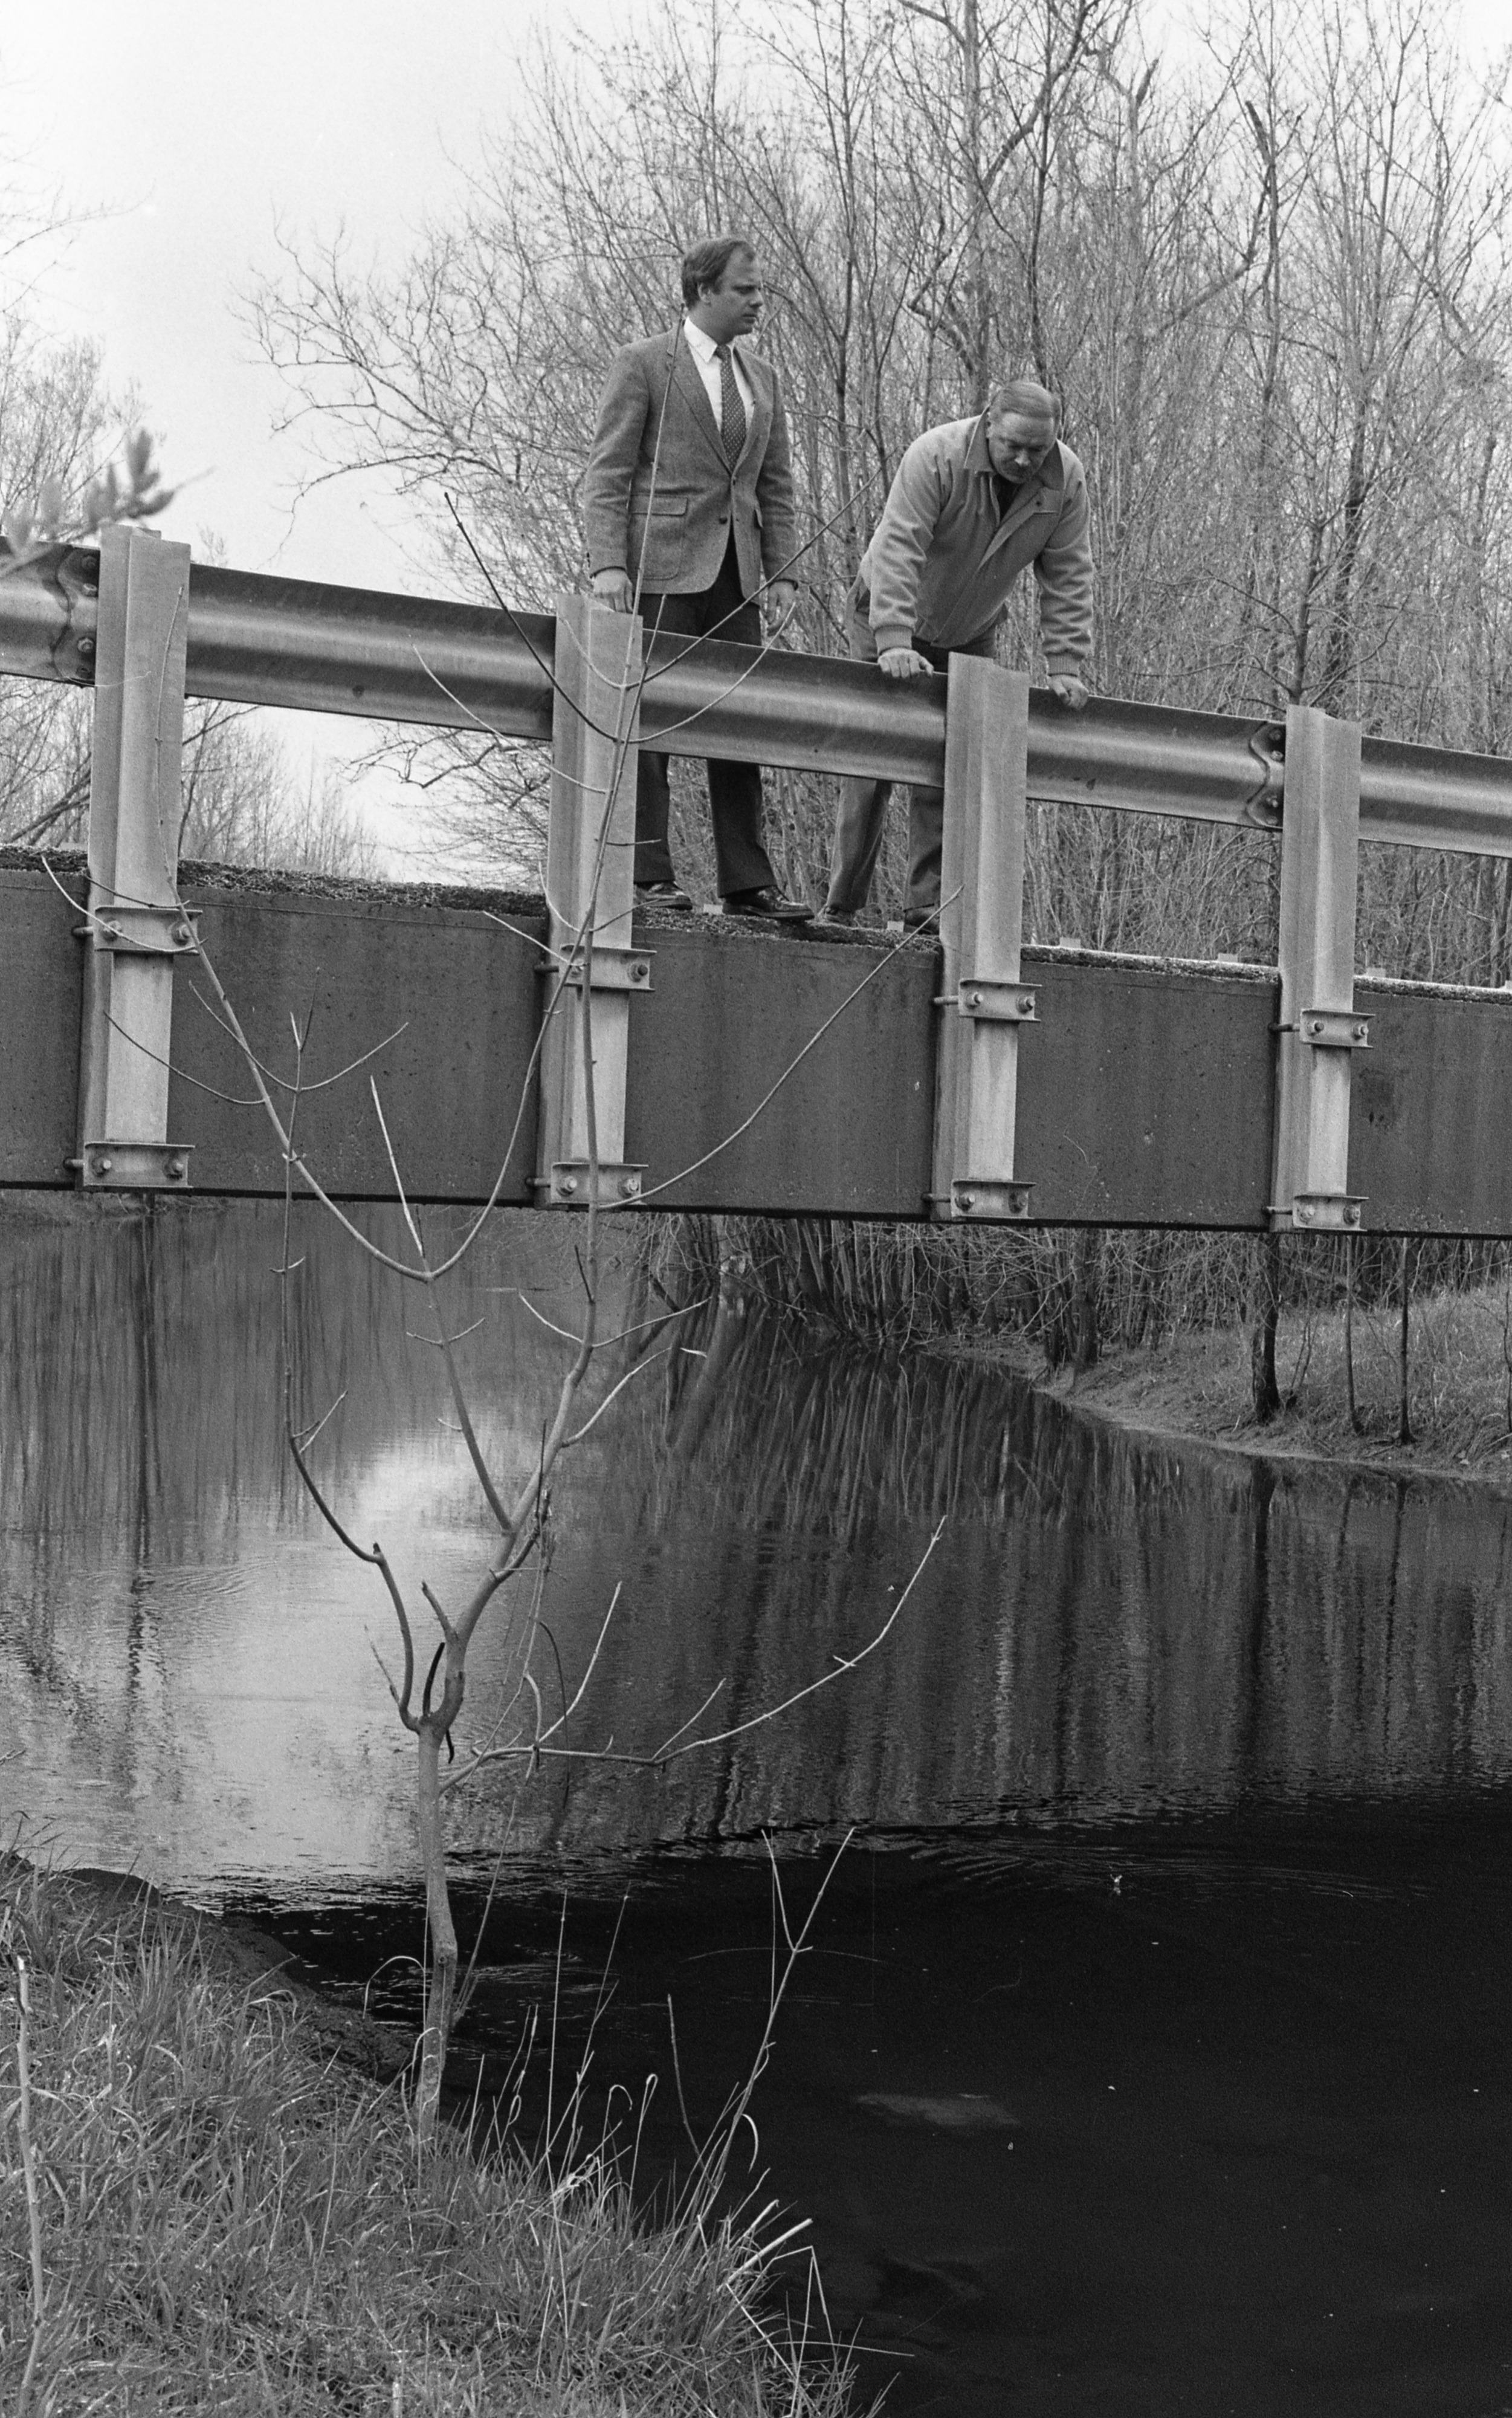 Sheriff's Detectives Paul Wade & William Eskridge On Sharon Valley Road Bridge, May 1988 image